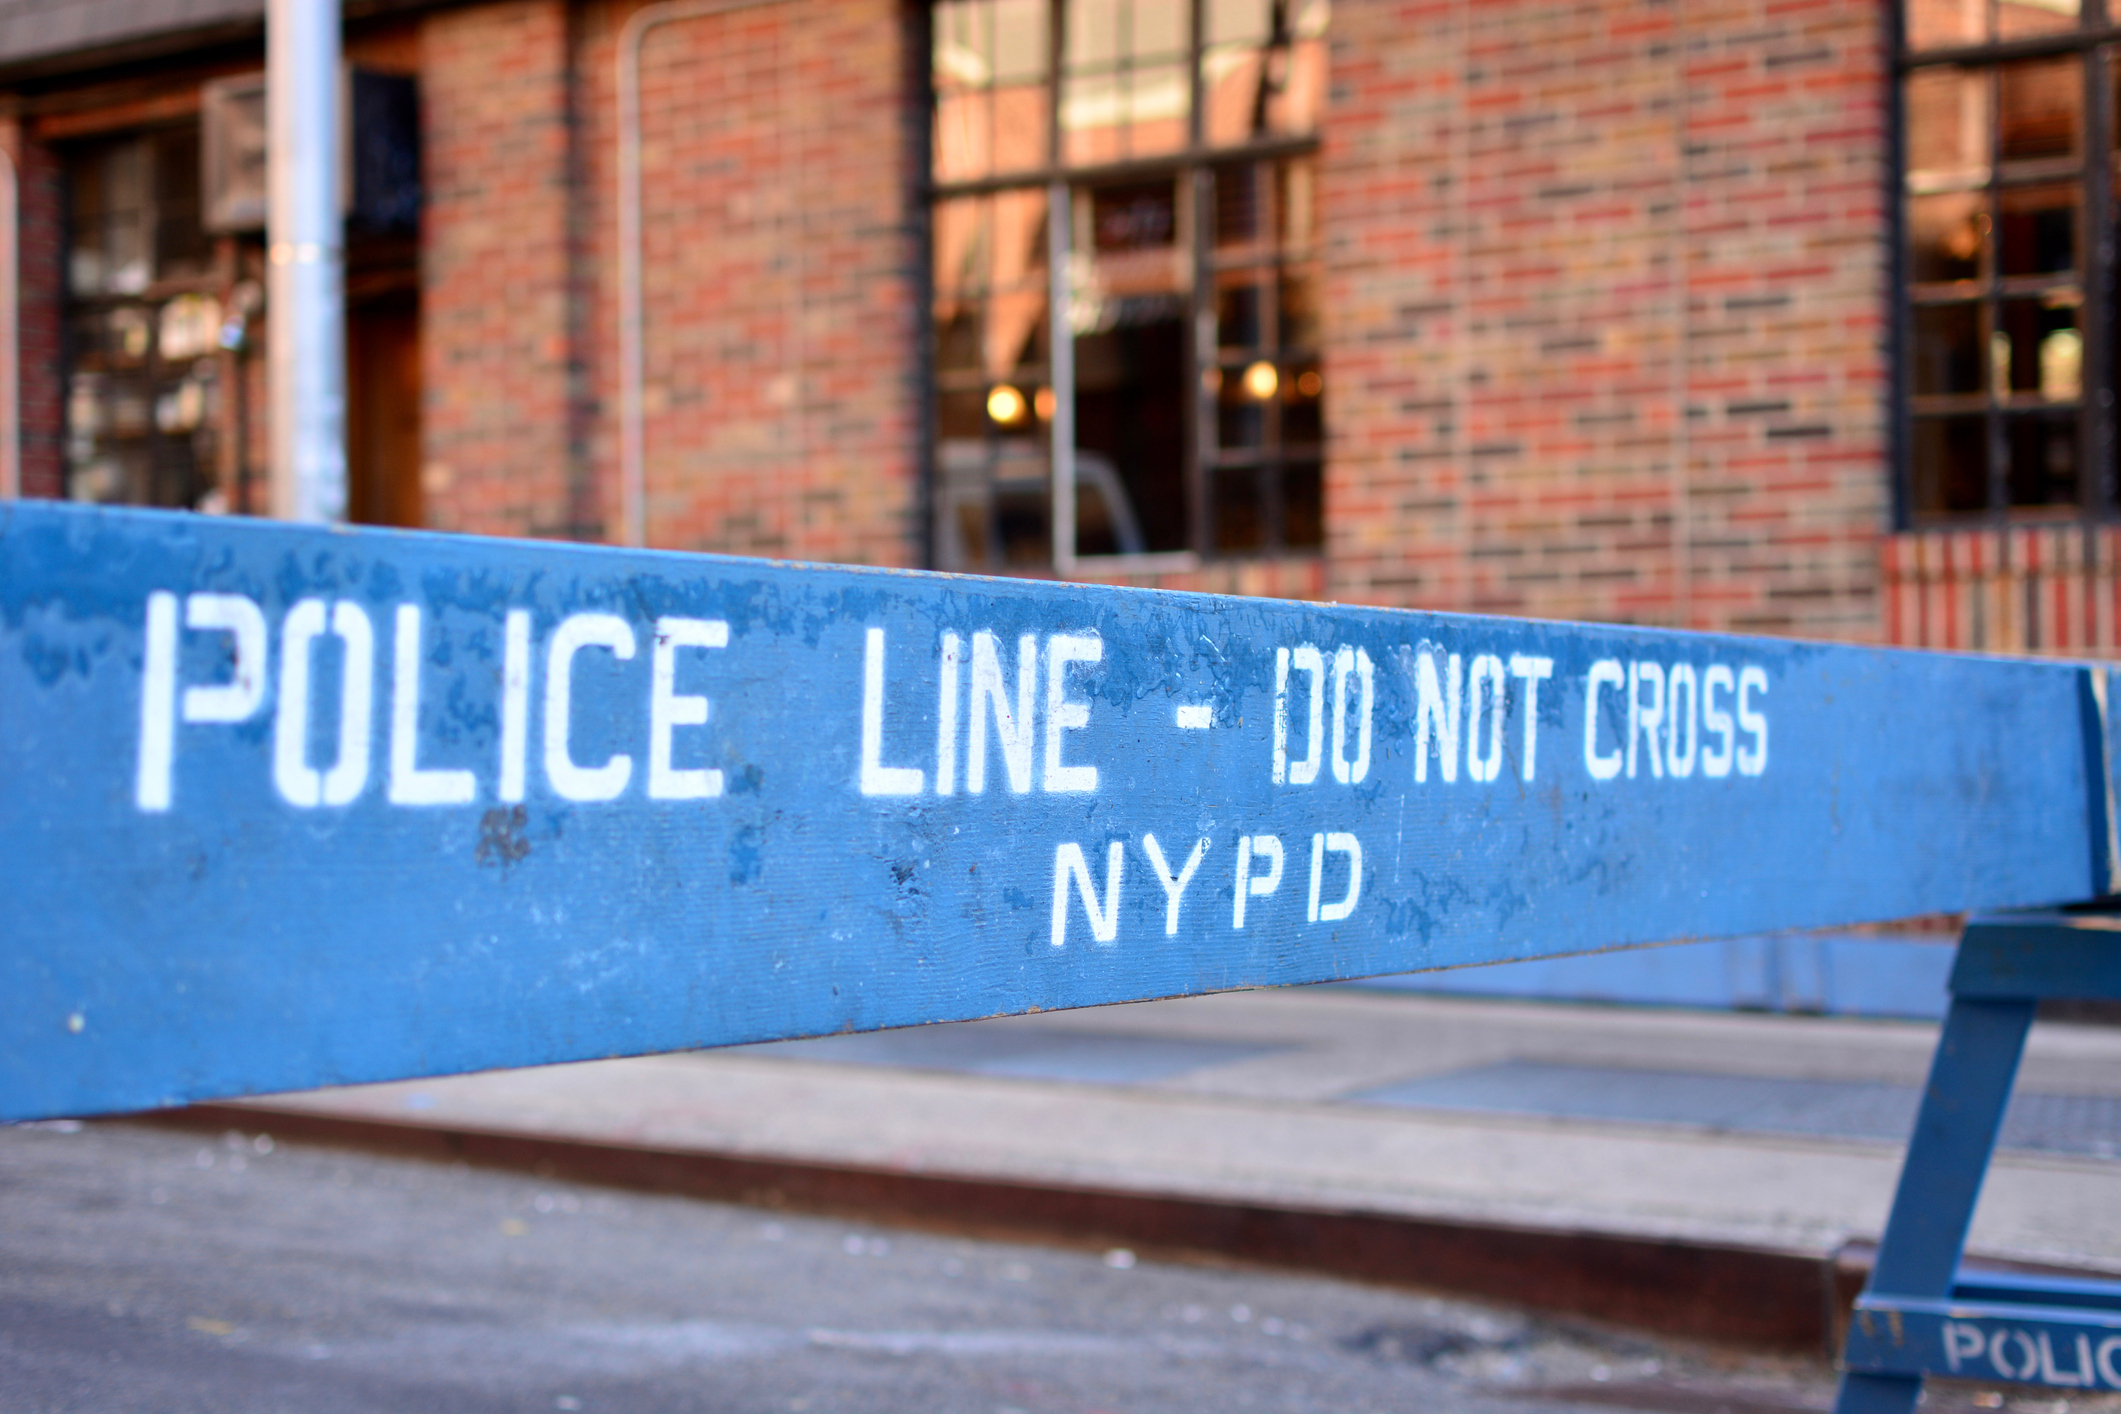 Police line, do not cross sign against a brick wall with windows in New York